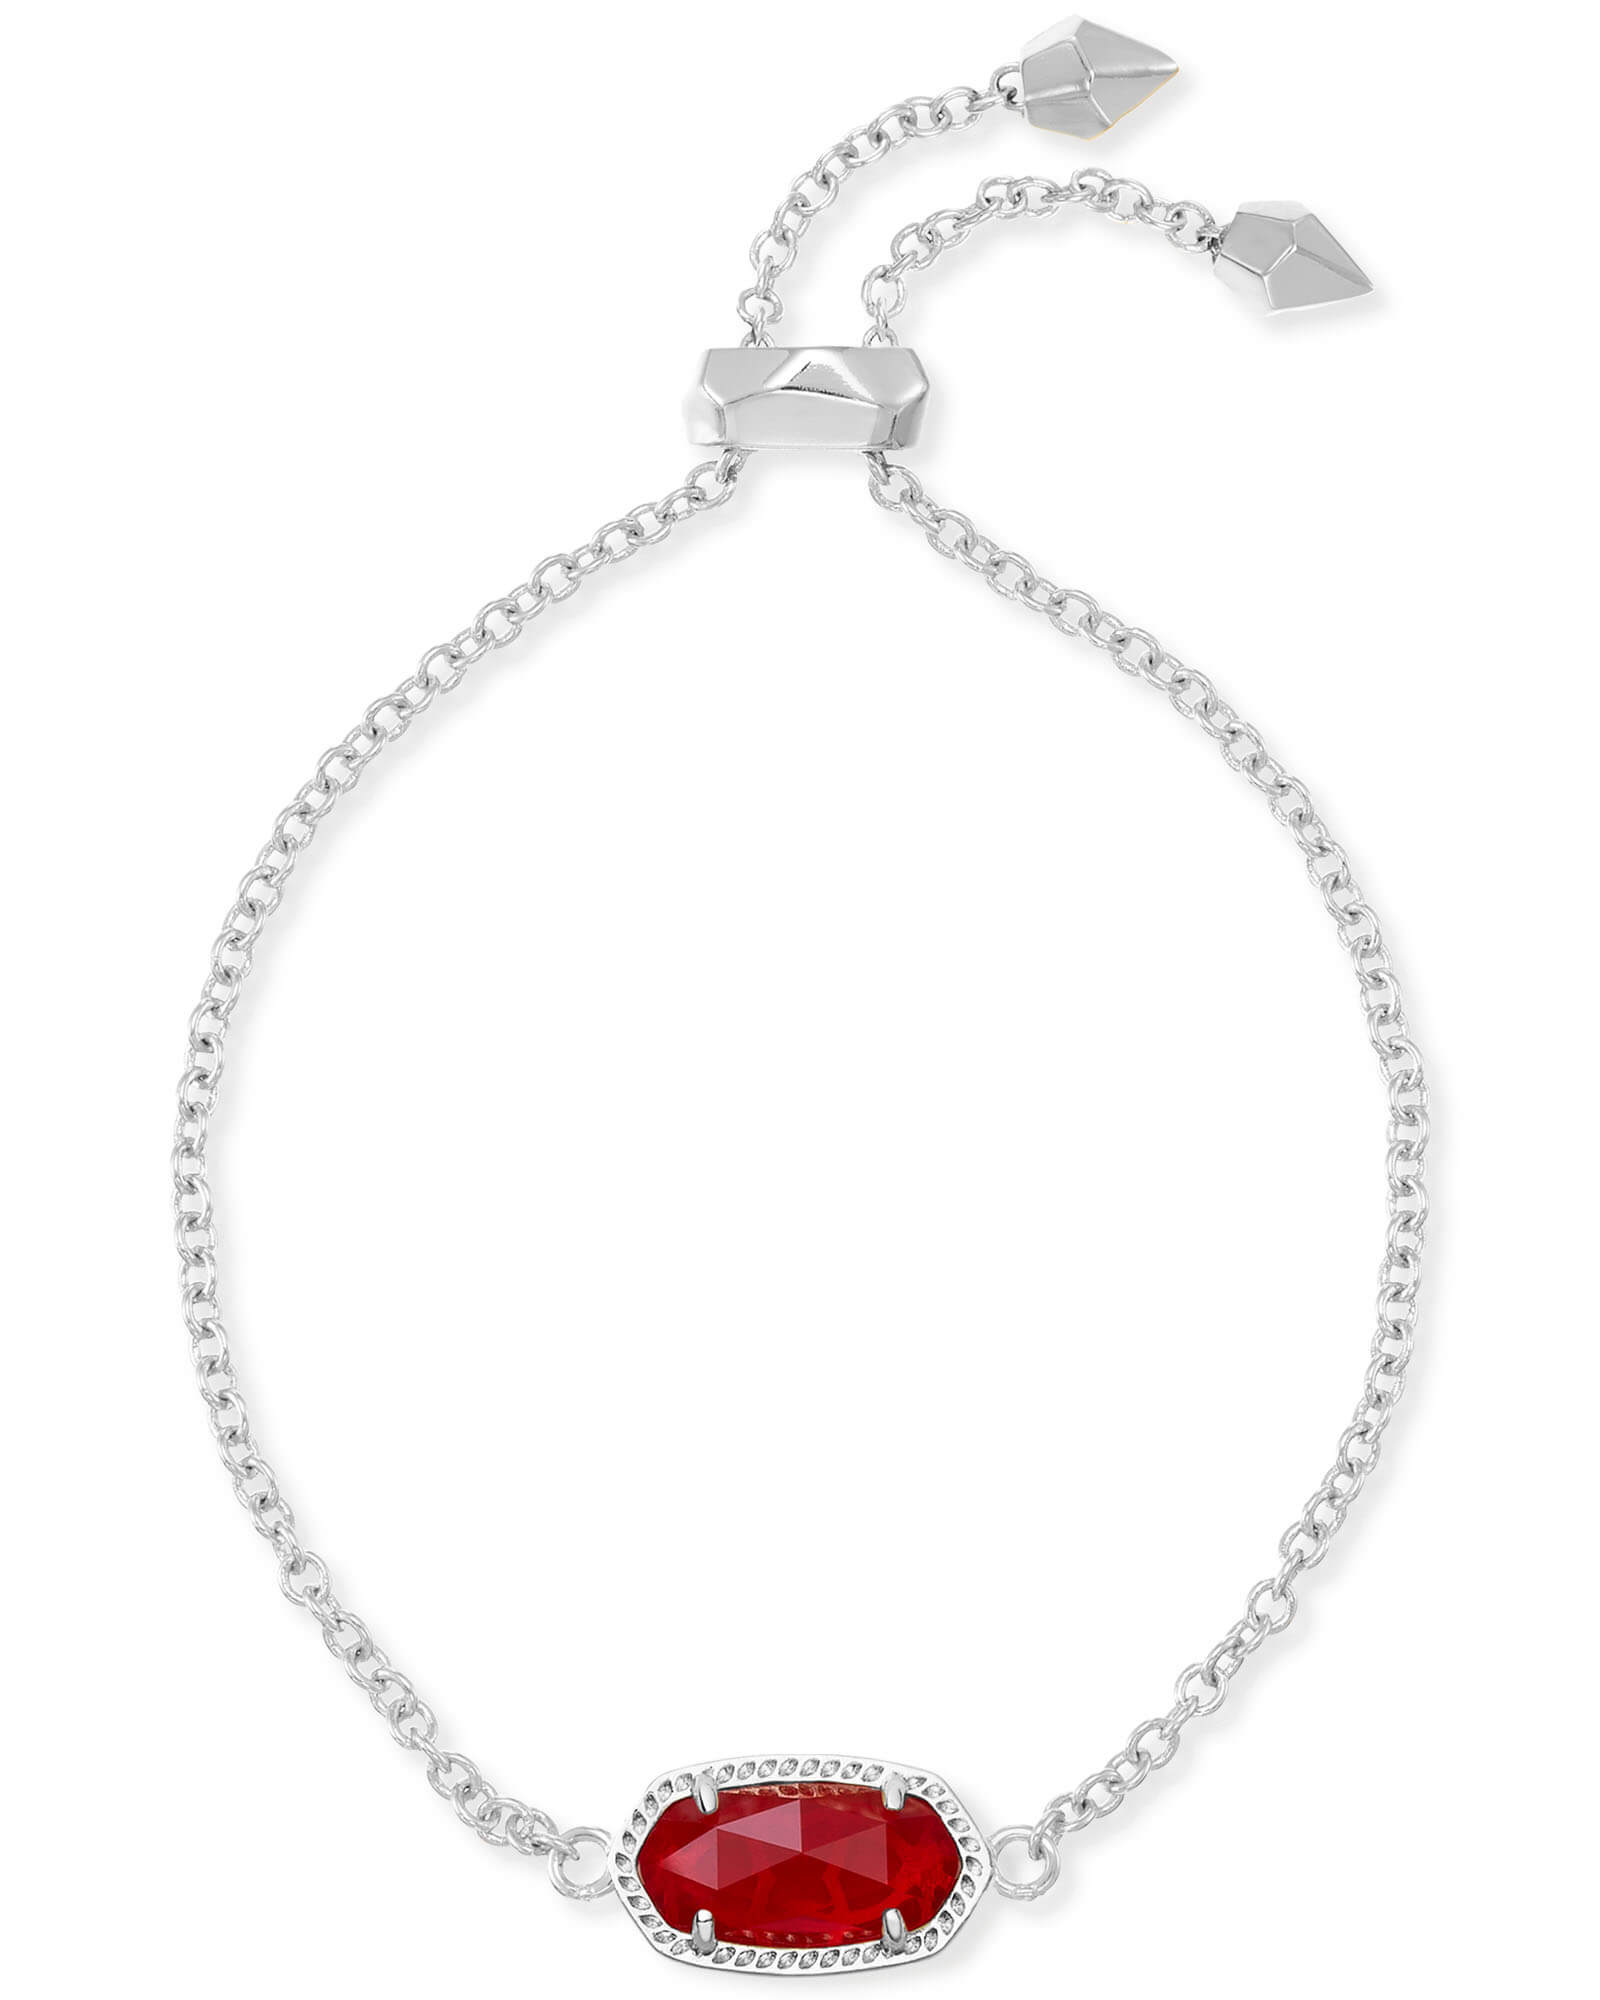 cbf620b4dca Elaina Adjustable Chain Bracelet in Ruby Red | Kendra Scott